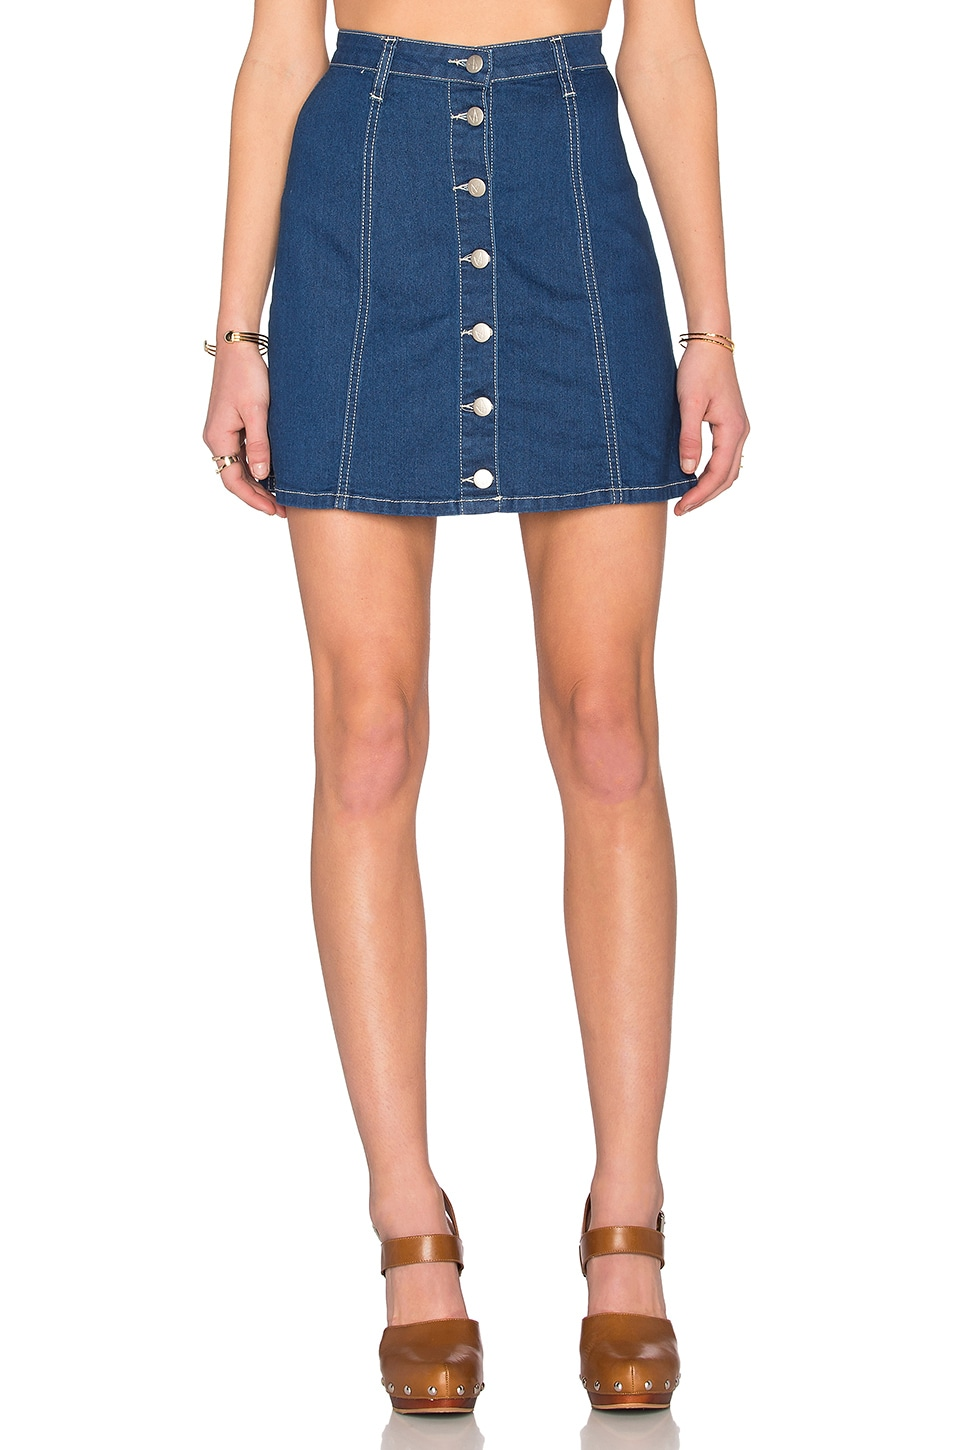 MINKPINK All I Want Button Up Skirt in Denim